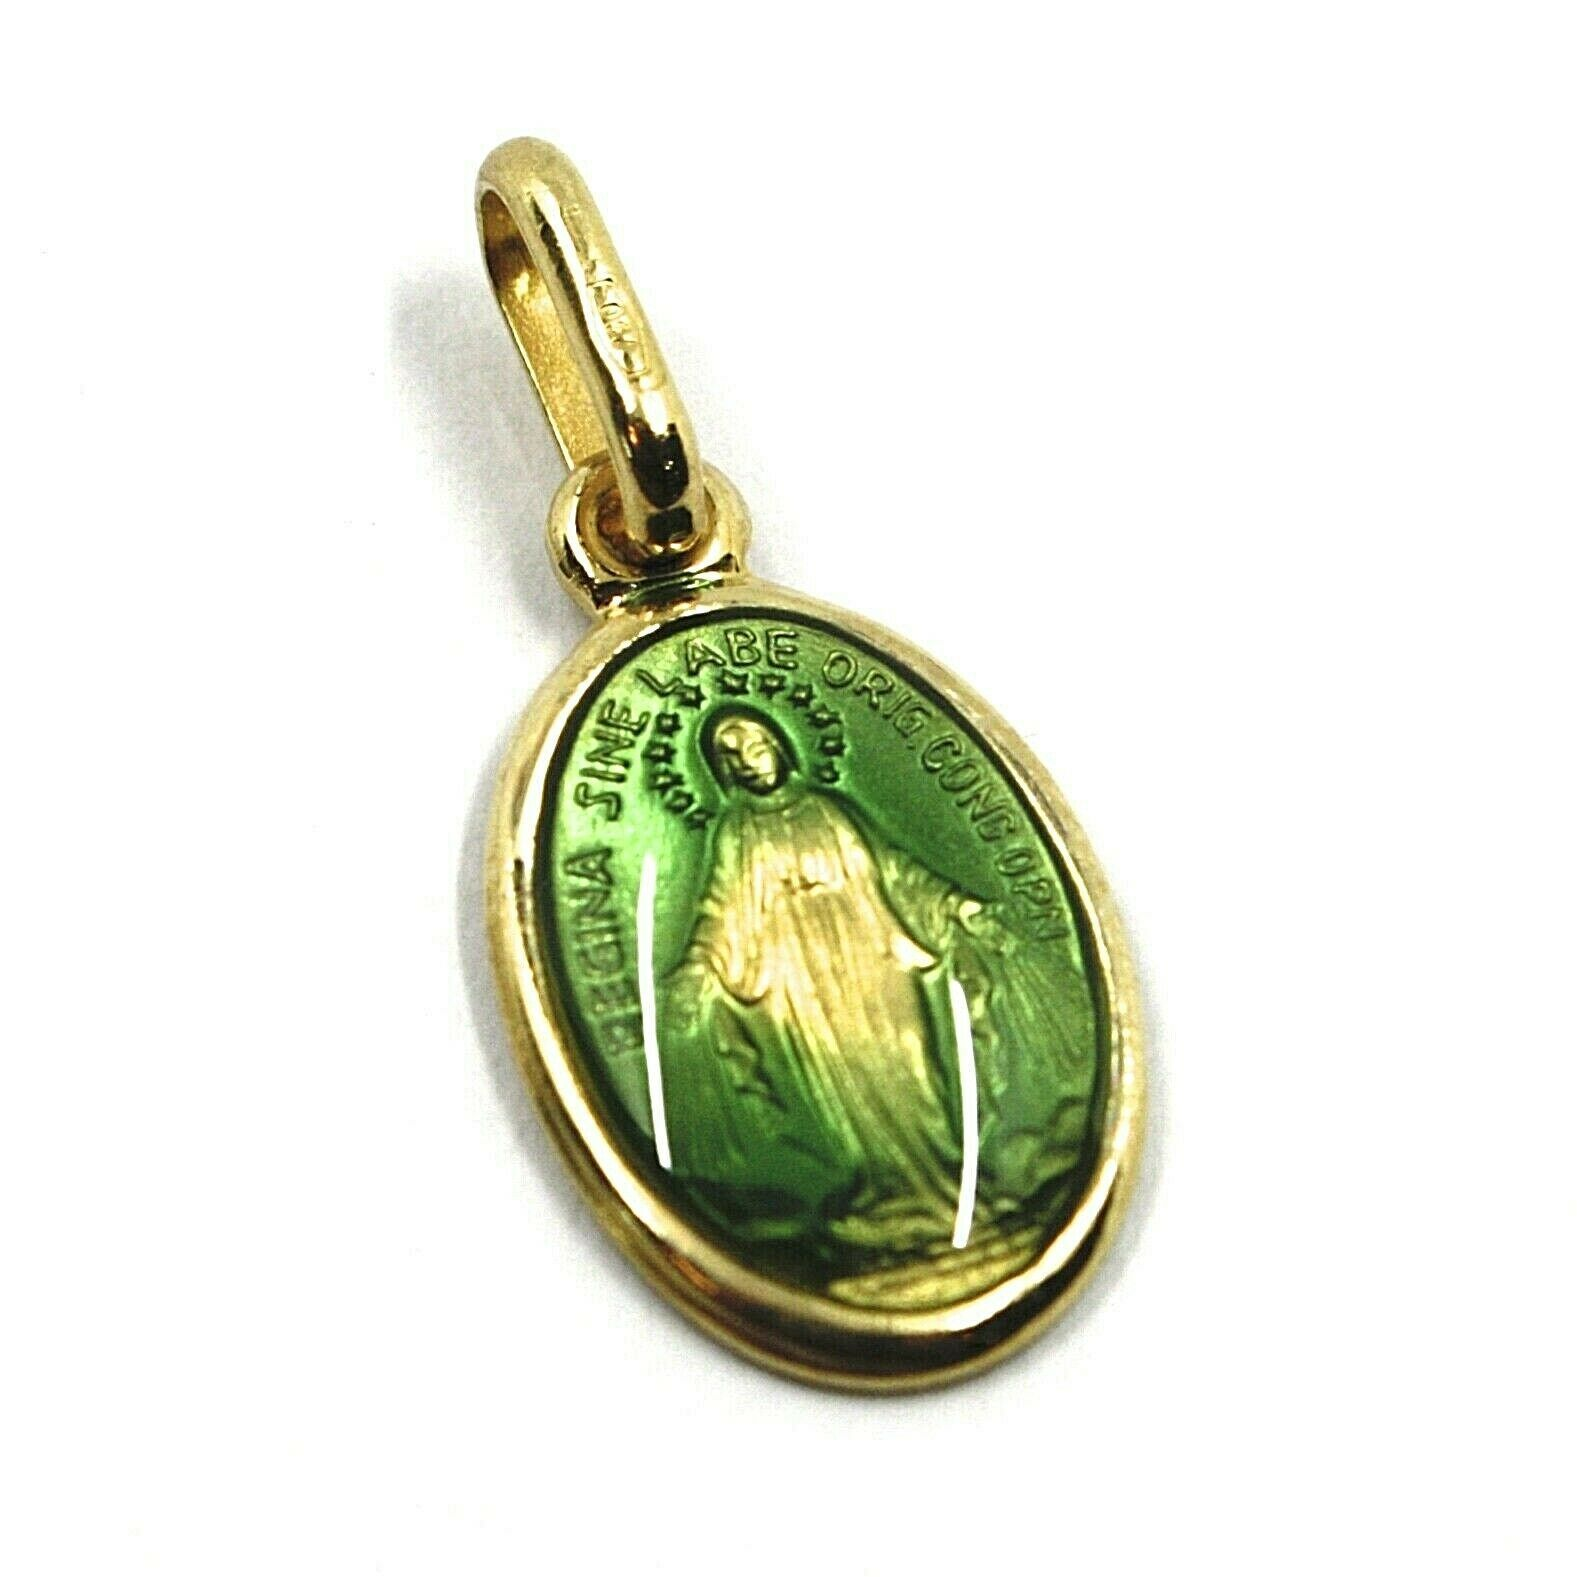 SOLID 18K YELLOW OVAL GOLD MEDAL, VIRGIN MARY 13mm, MIRACULOUS, GREEN ENAMEL